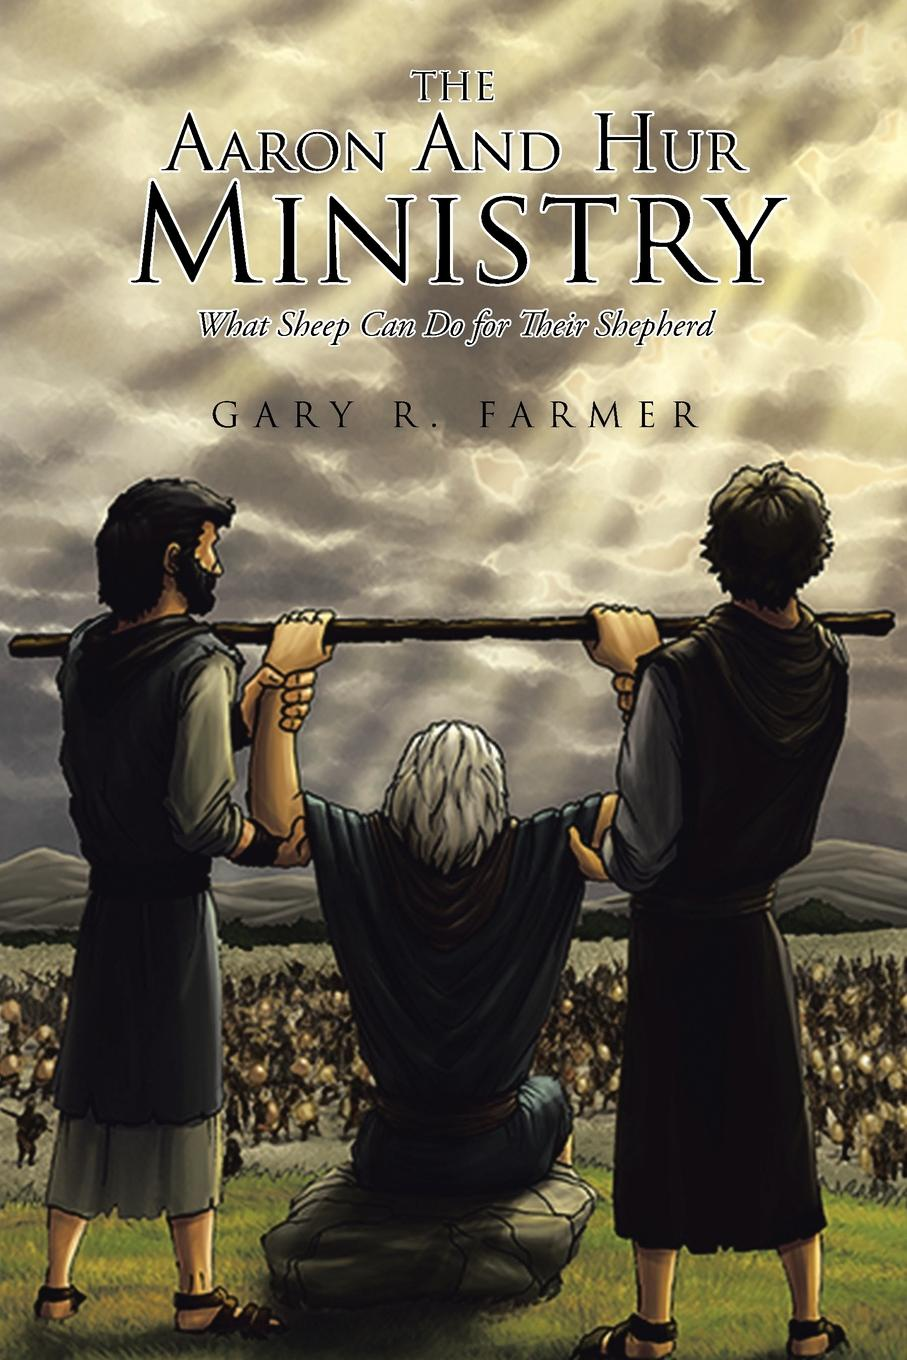 Gary Farmer The Aaron and Hur Ministry. What Sheep Can Do for Their Shepherd gary farmer the aaron and hur ministry what sheep can do for their shepherd